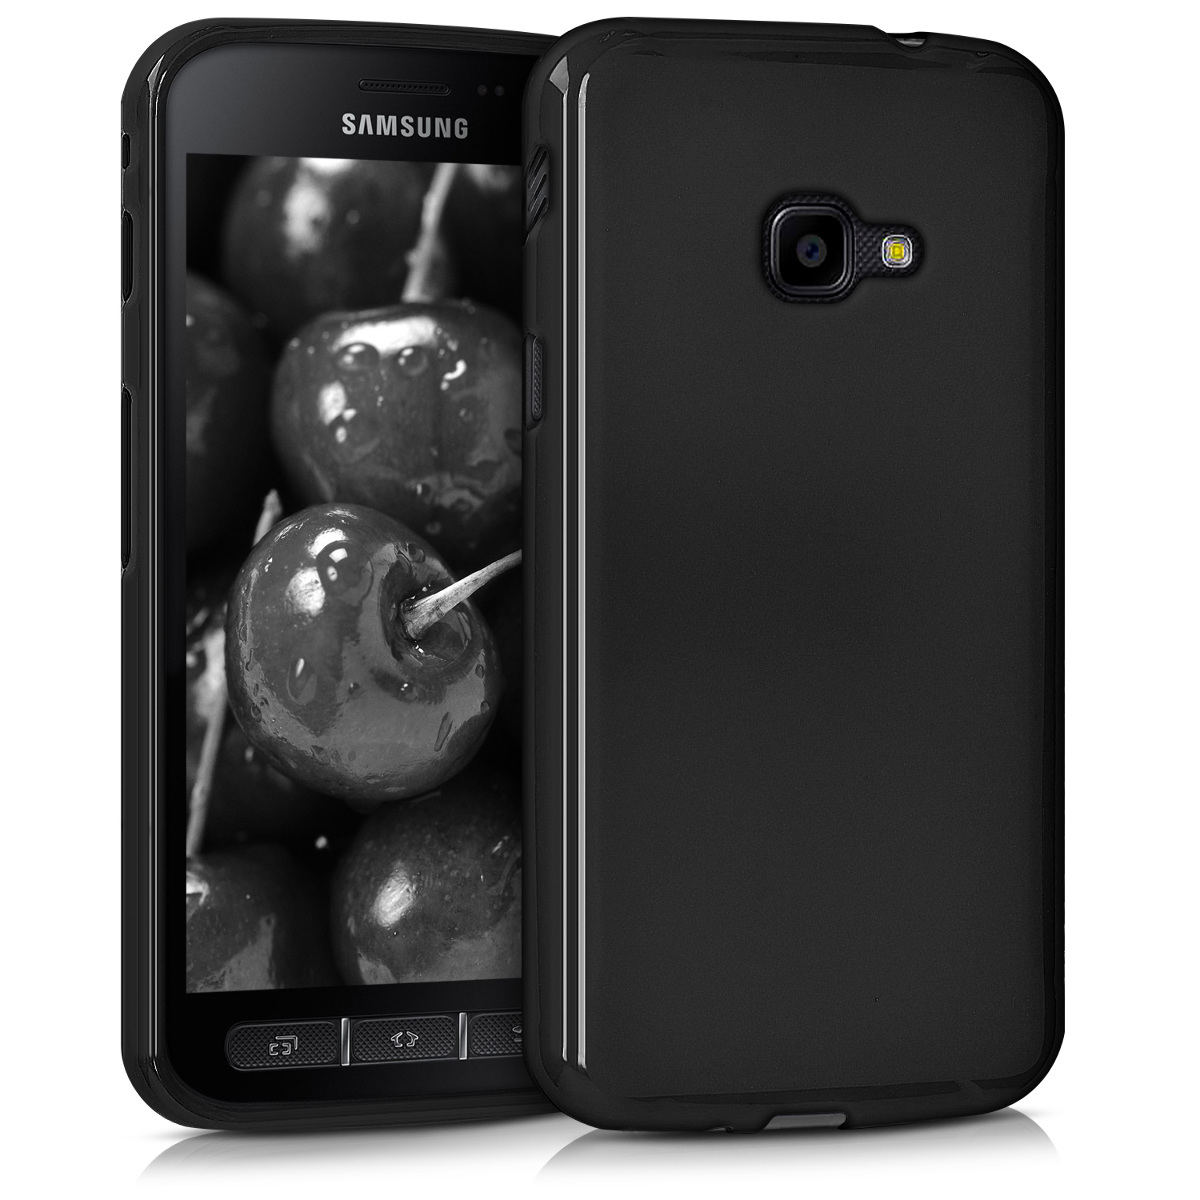 KW Θήκη Σιλικόνης Samsung Galaxy Xcover 4 - Soft Flexible Shock Absorbent Protective Phone Cover - Black Matte (42413.47)